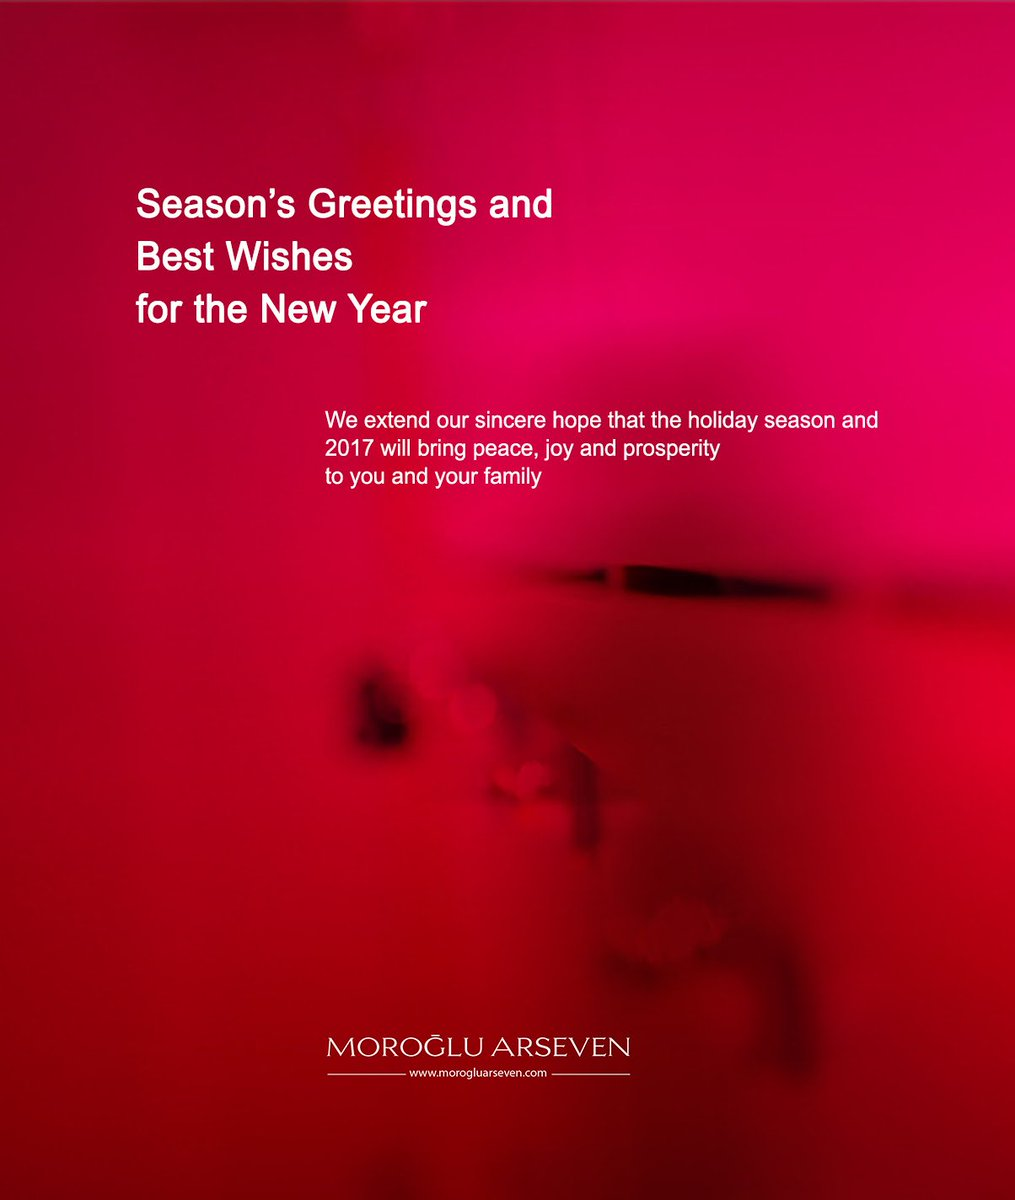 Moroglu Arseven On Twitter Seasons Greetings And Best Wishes For